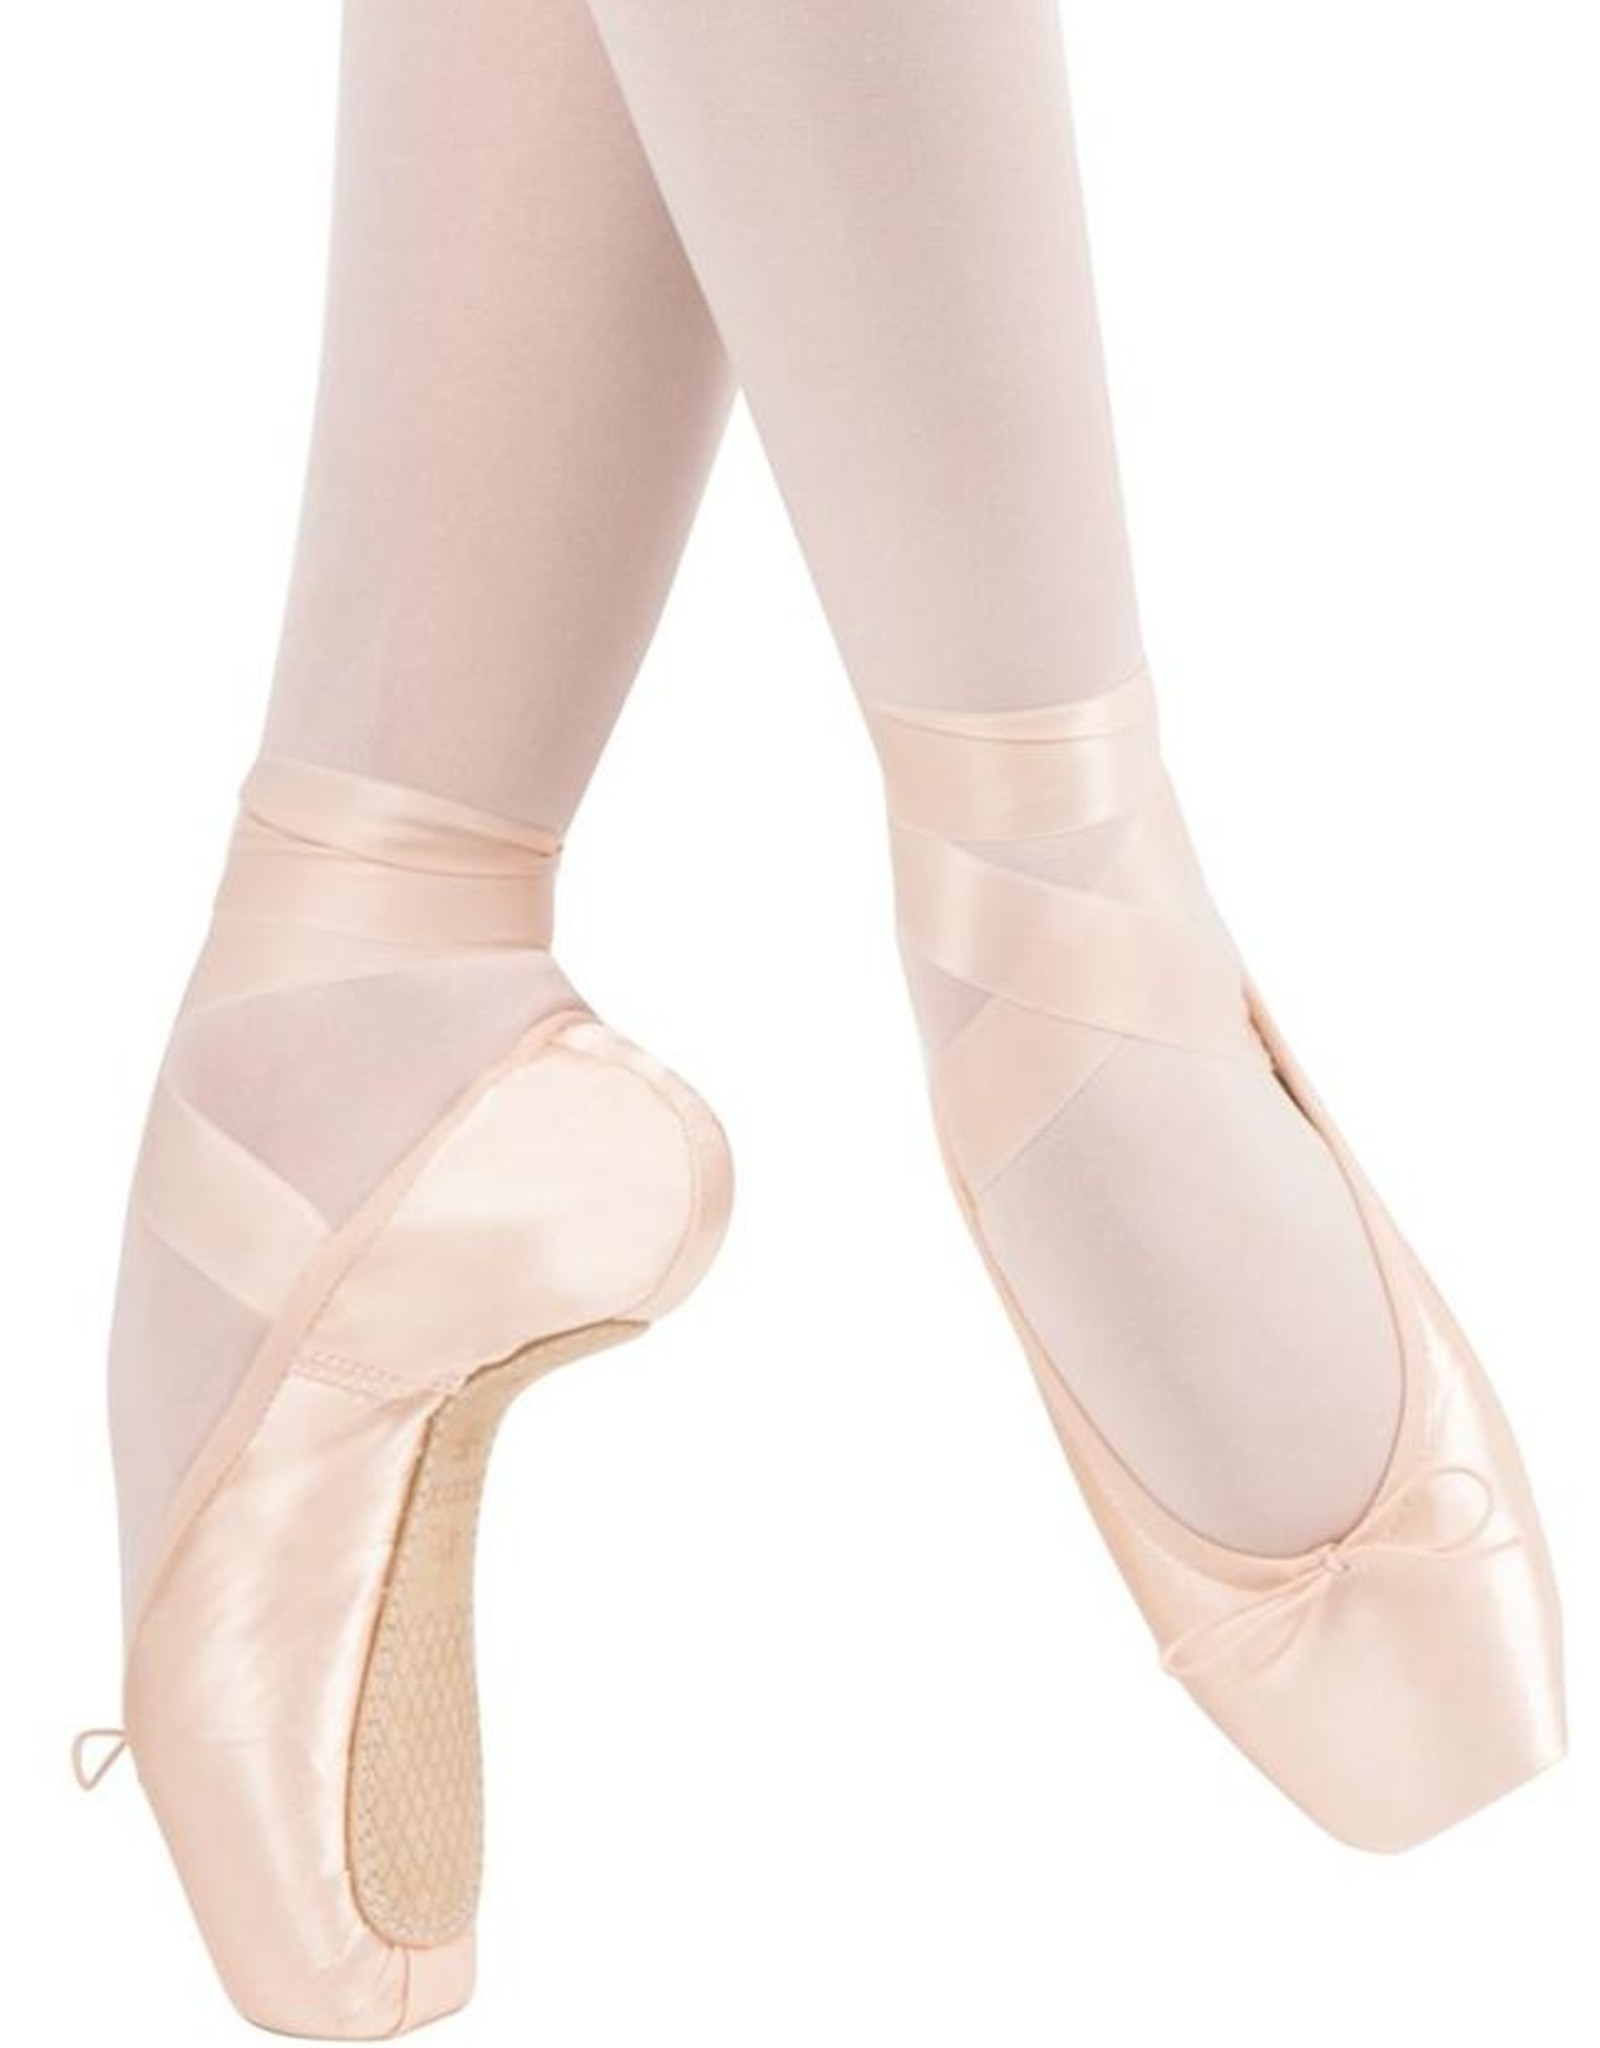 GRISHKO DREAMPOINTE NOT PRE-ARCHED POINTE SHOES (0527)